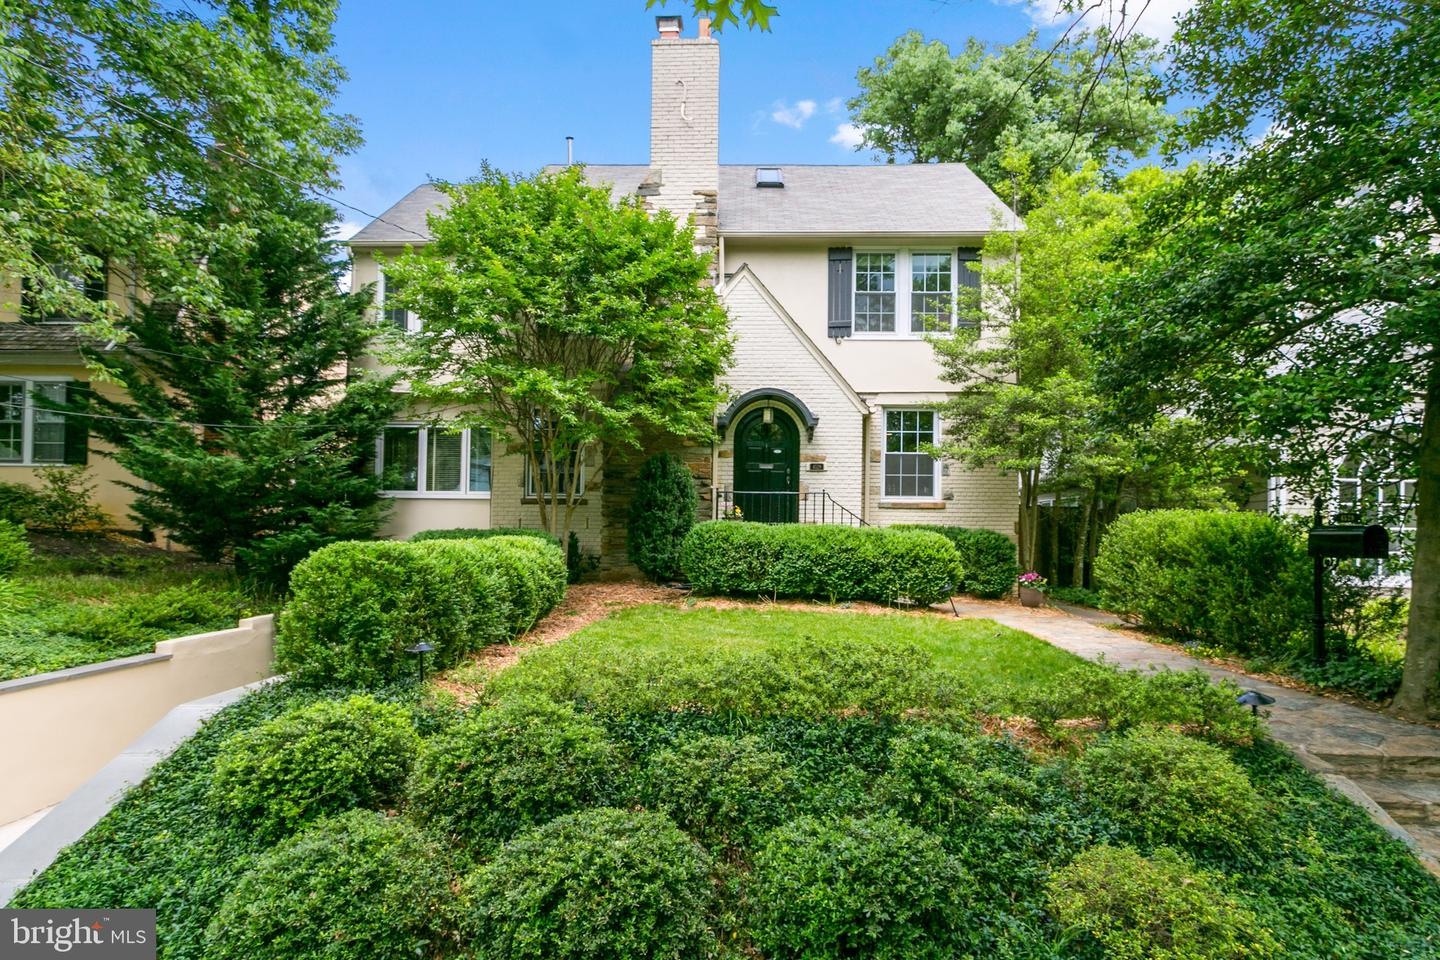 Single Family for Sale at 4529 Lowell St NW 4529 Lowell St NW Washington, District Of Columbia 20016 United States